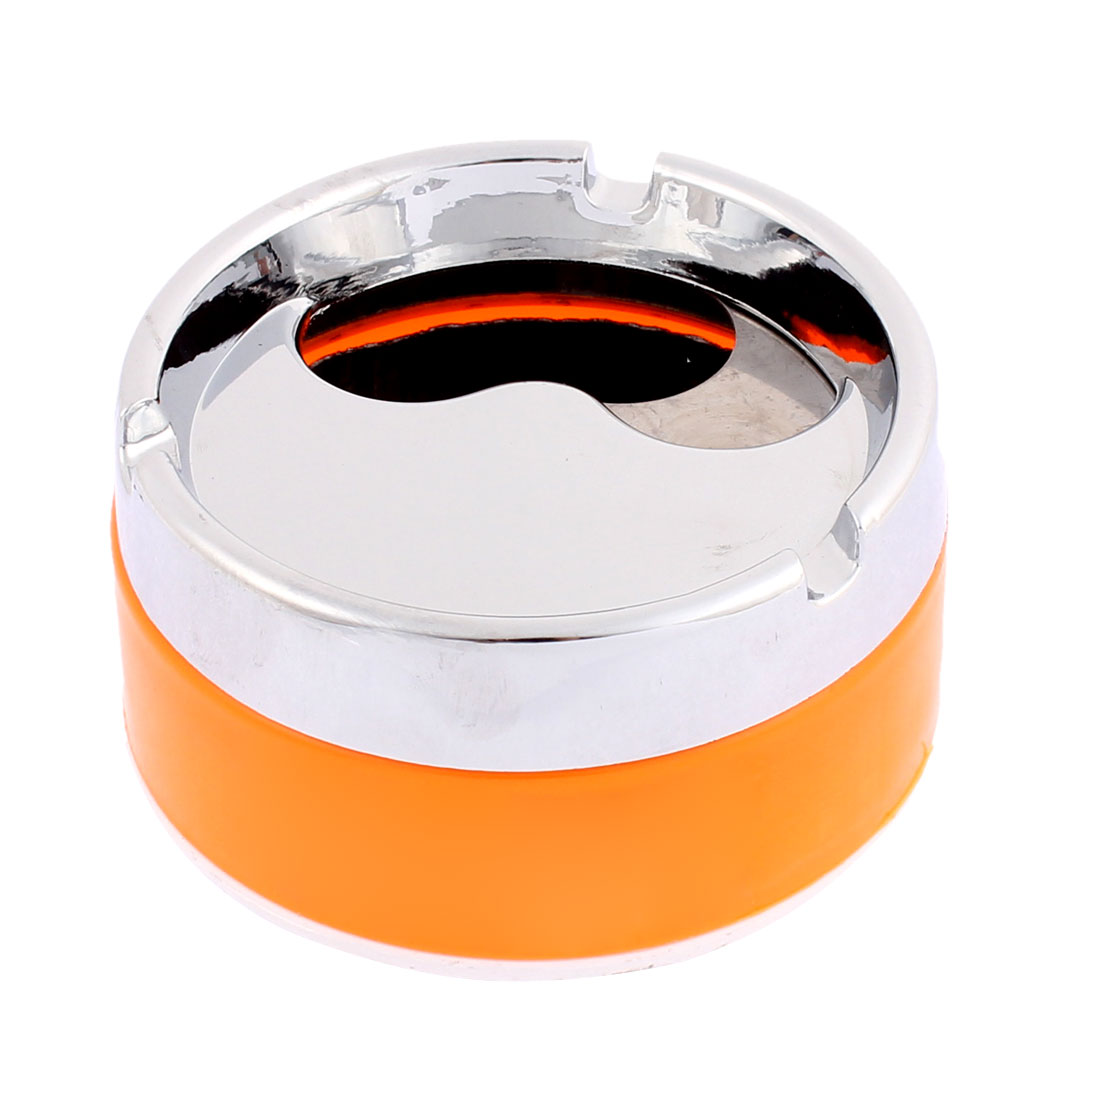 Auto Car Home Office Cylinder Shaped Cigarette Ashtray Holder Cup 9cm Dia